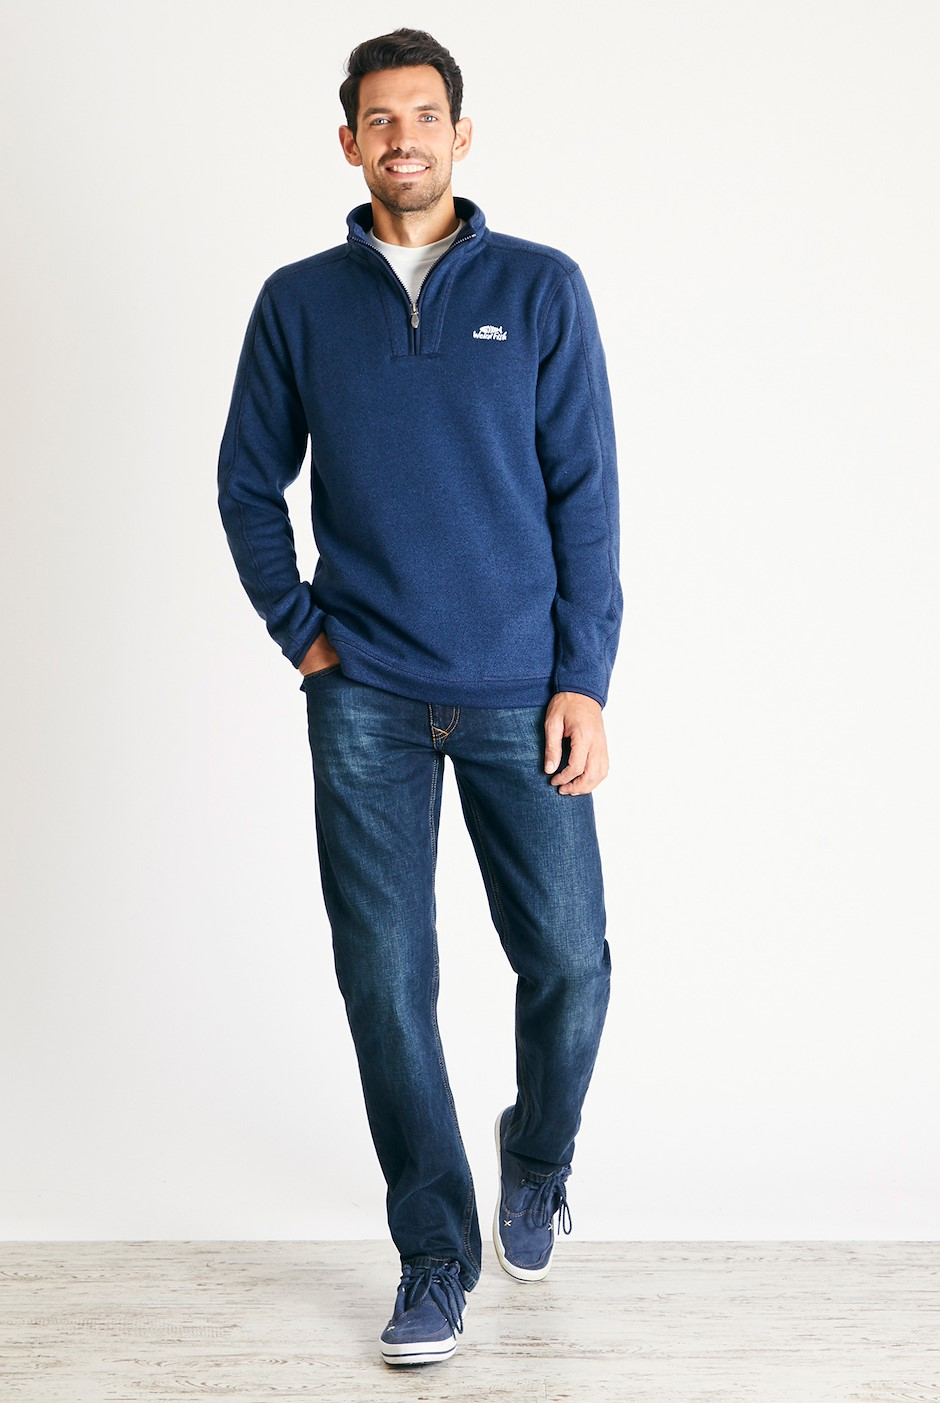 Stowe 1/4 Zip Soft Knit Fleece  Navy